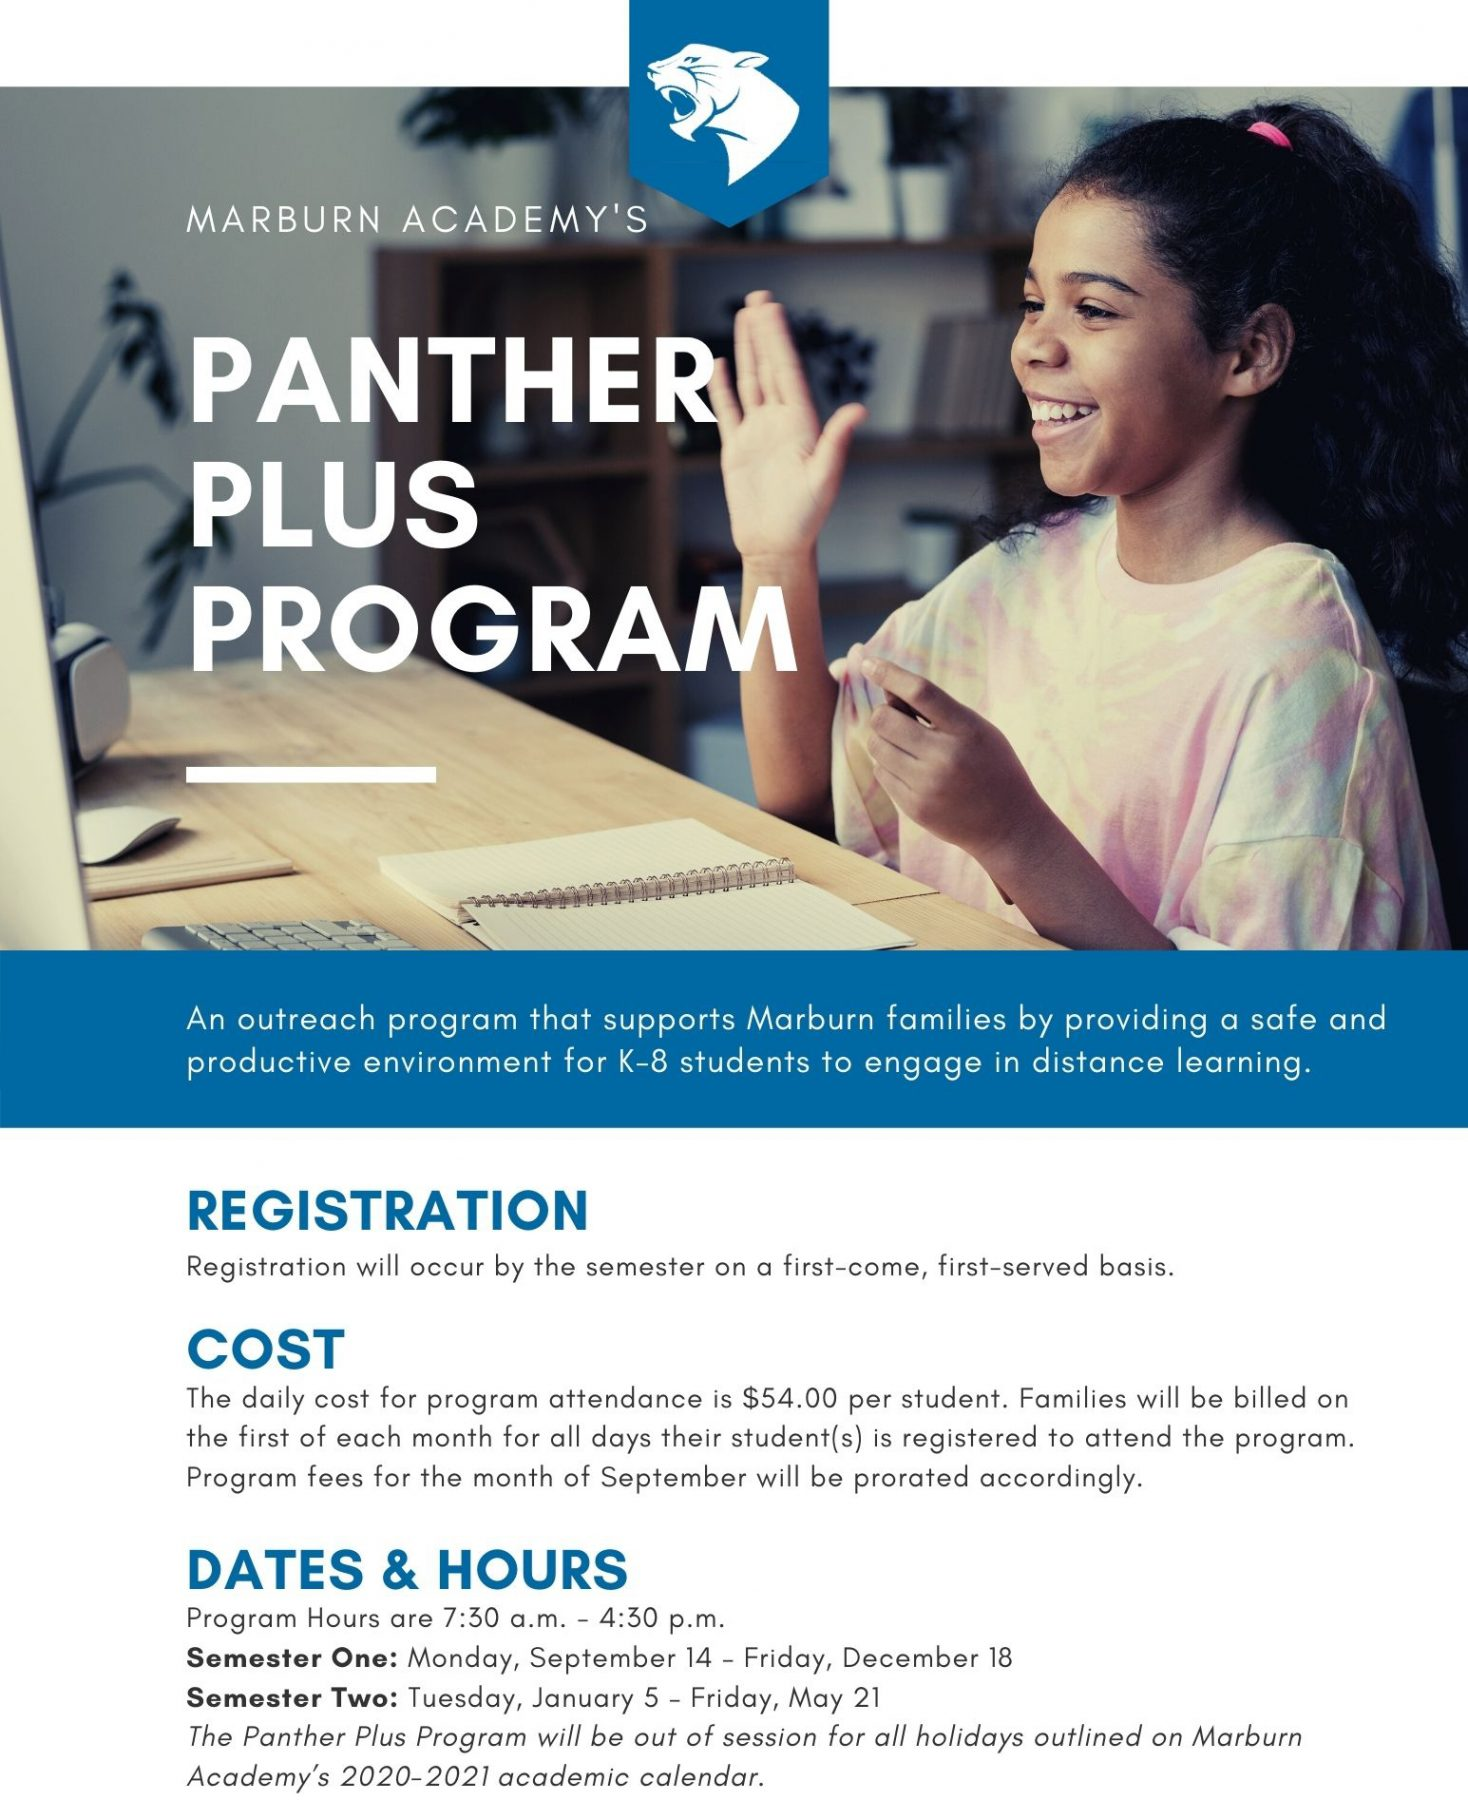 Panther Plus Program Details